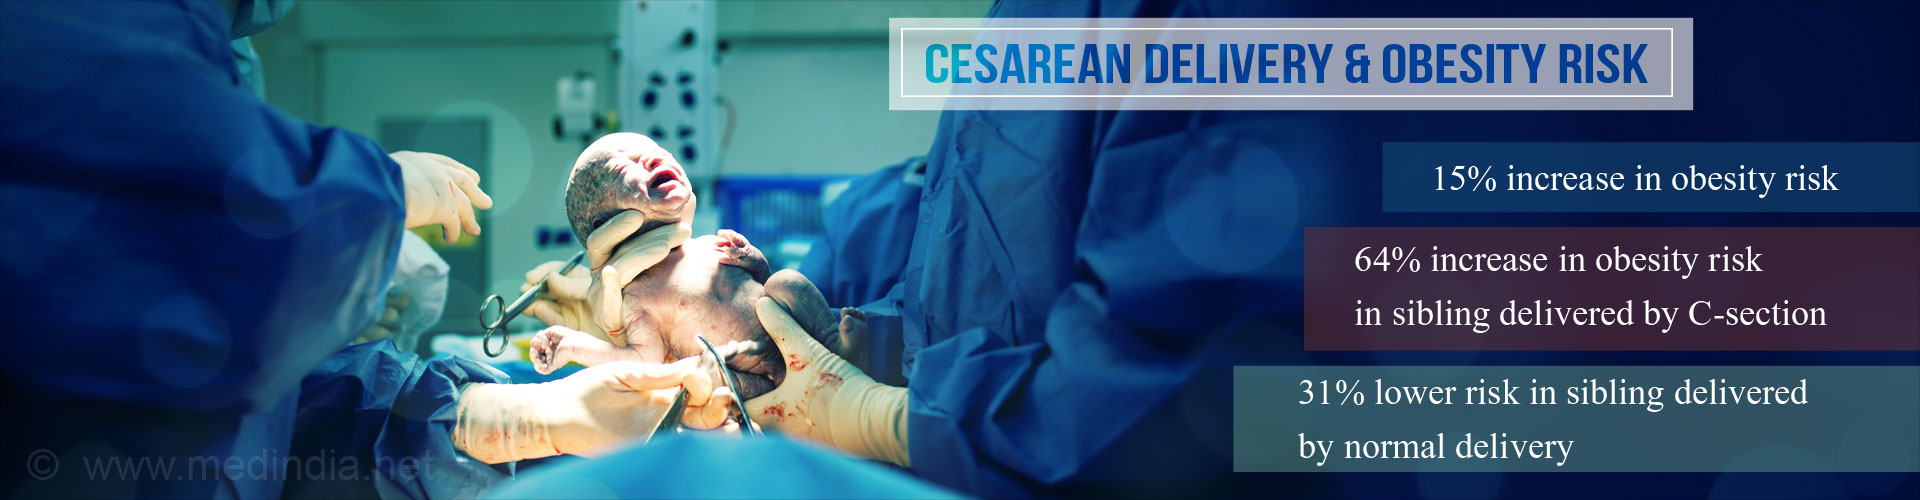 Obesity Risk Increases by 15% in Children Via Caesarean Birth